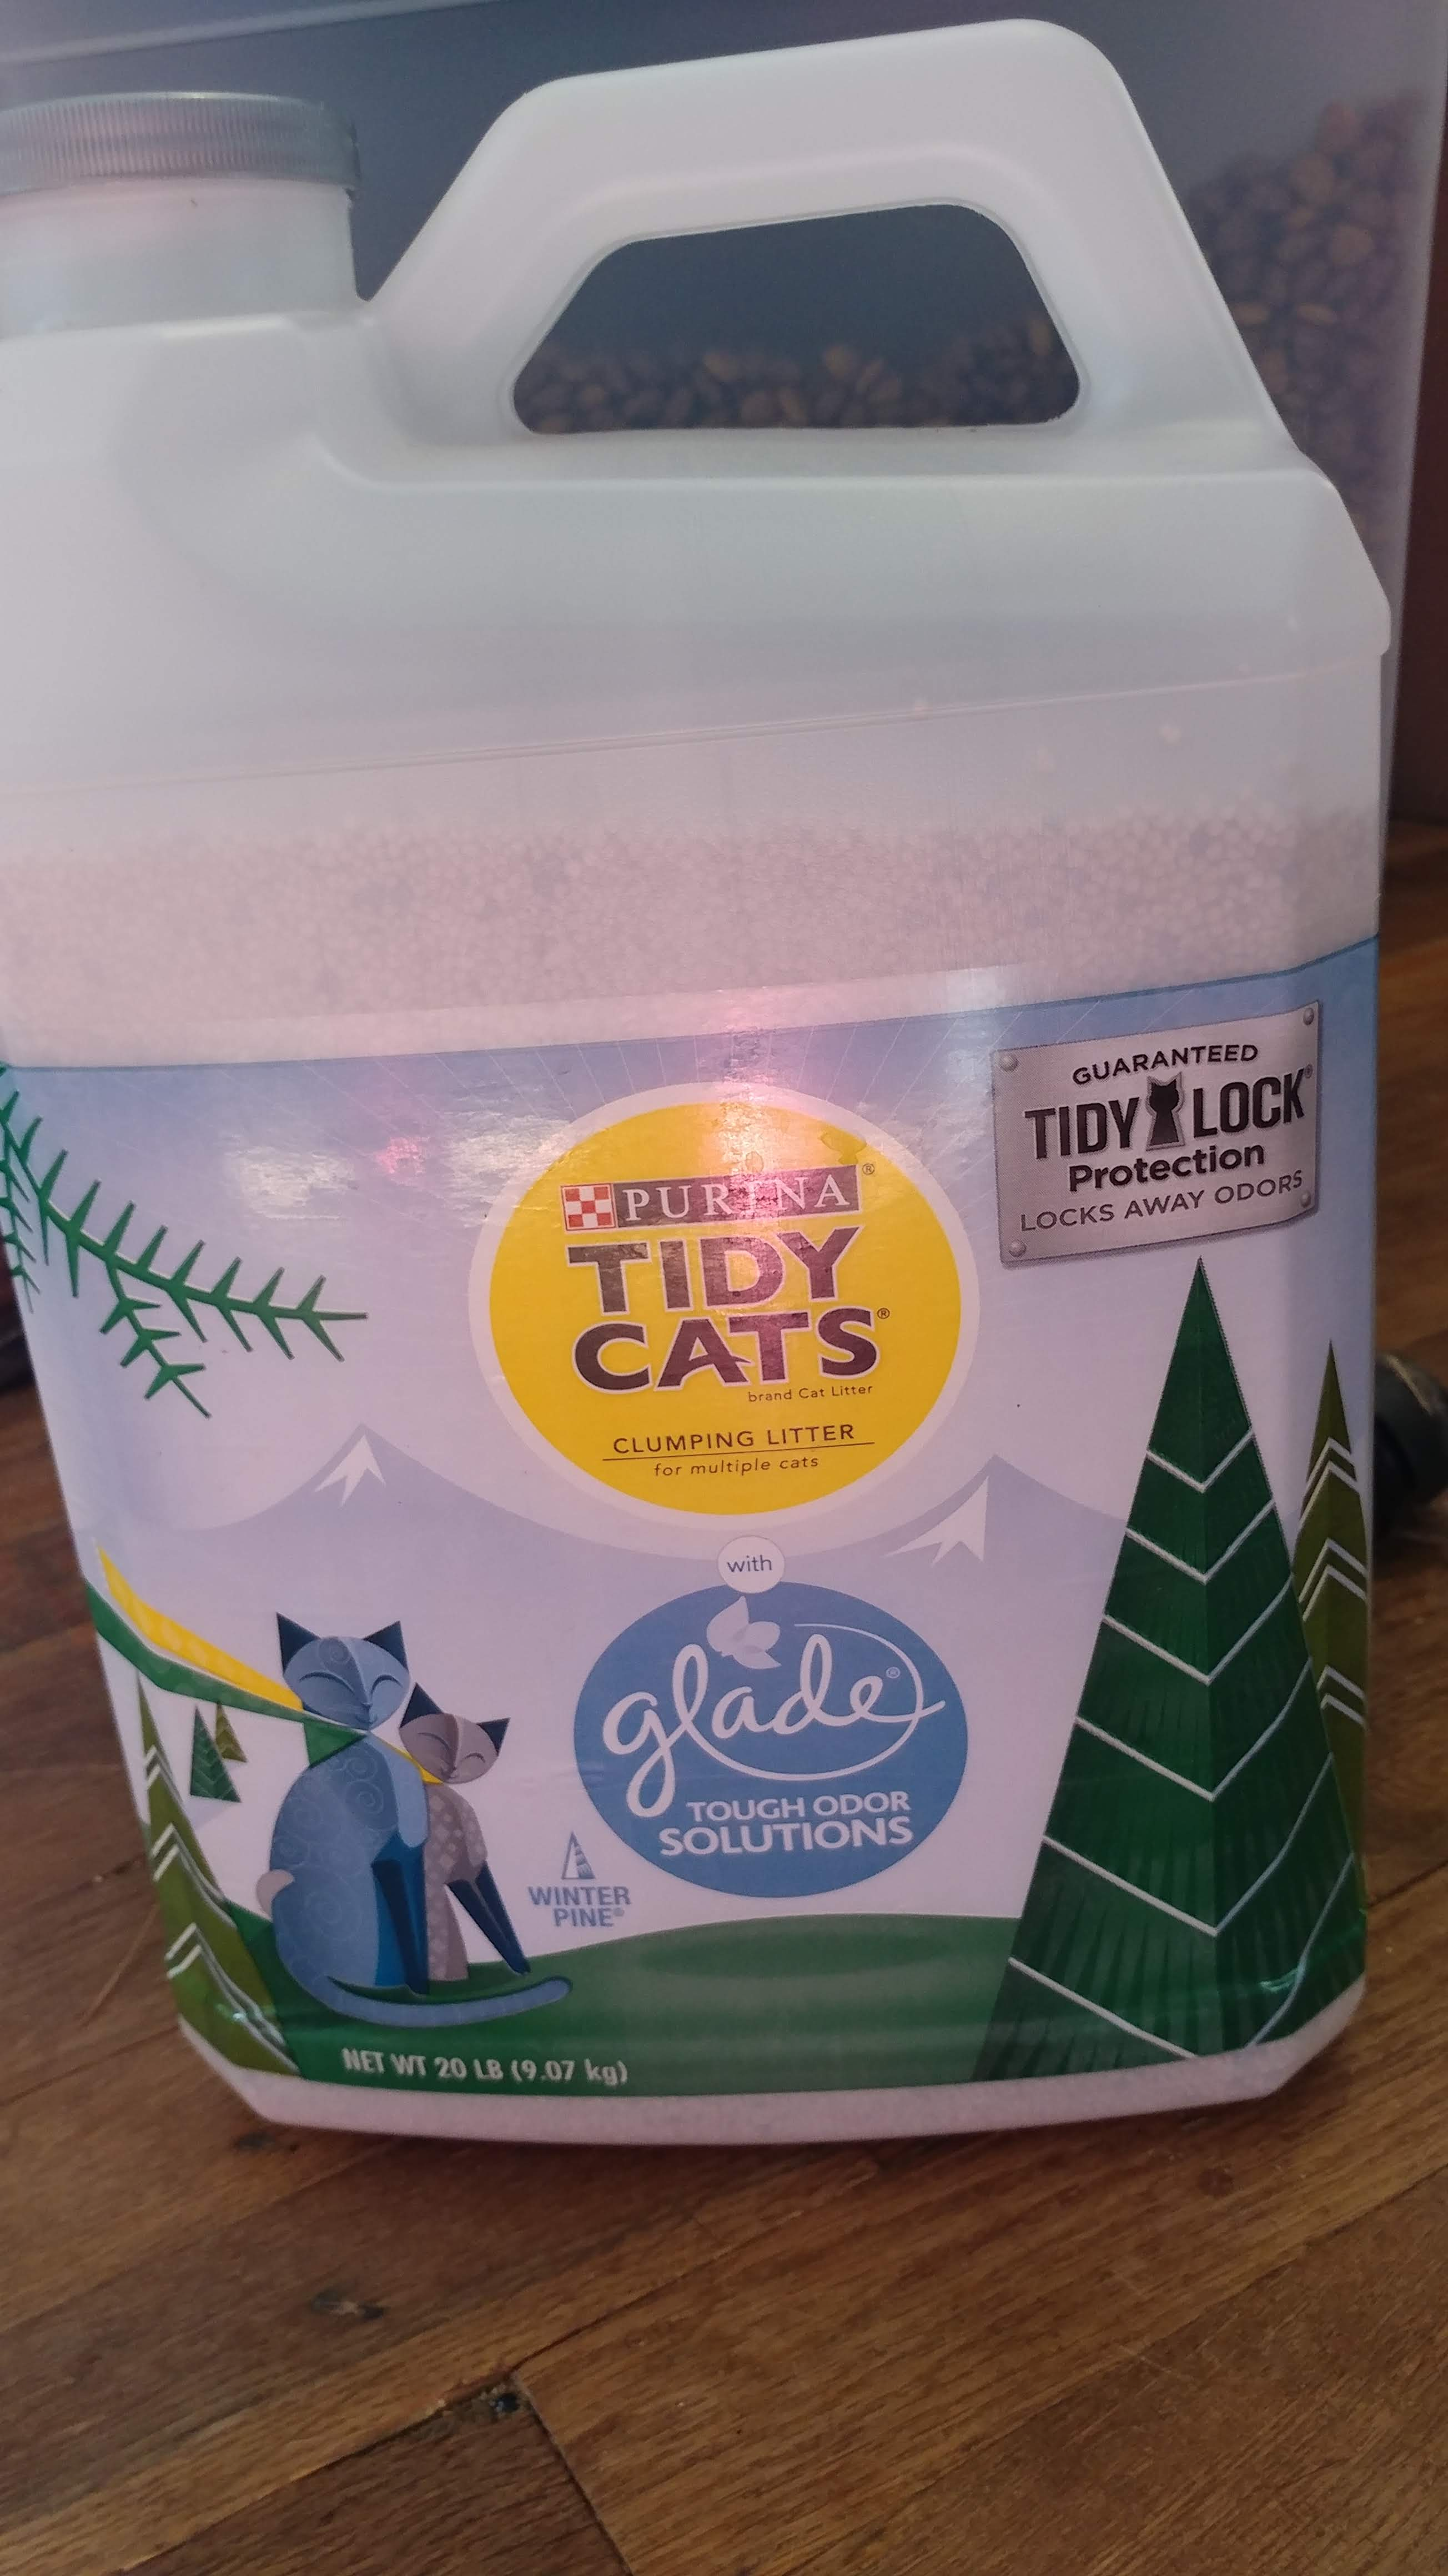 Tidy Cats with Glad Tough Odor Solutions (Winter Pine)